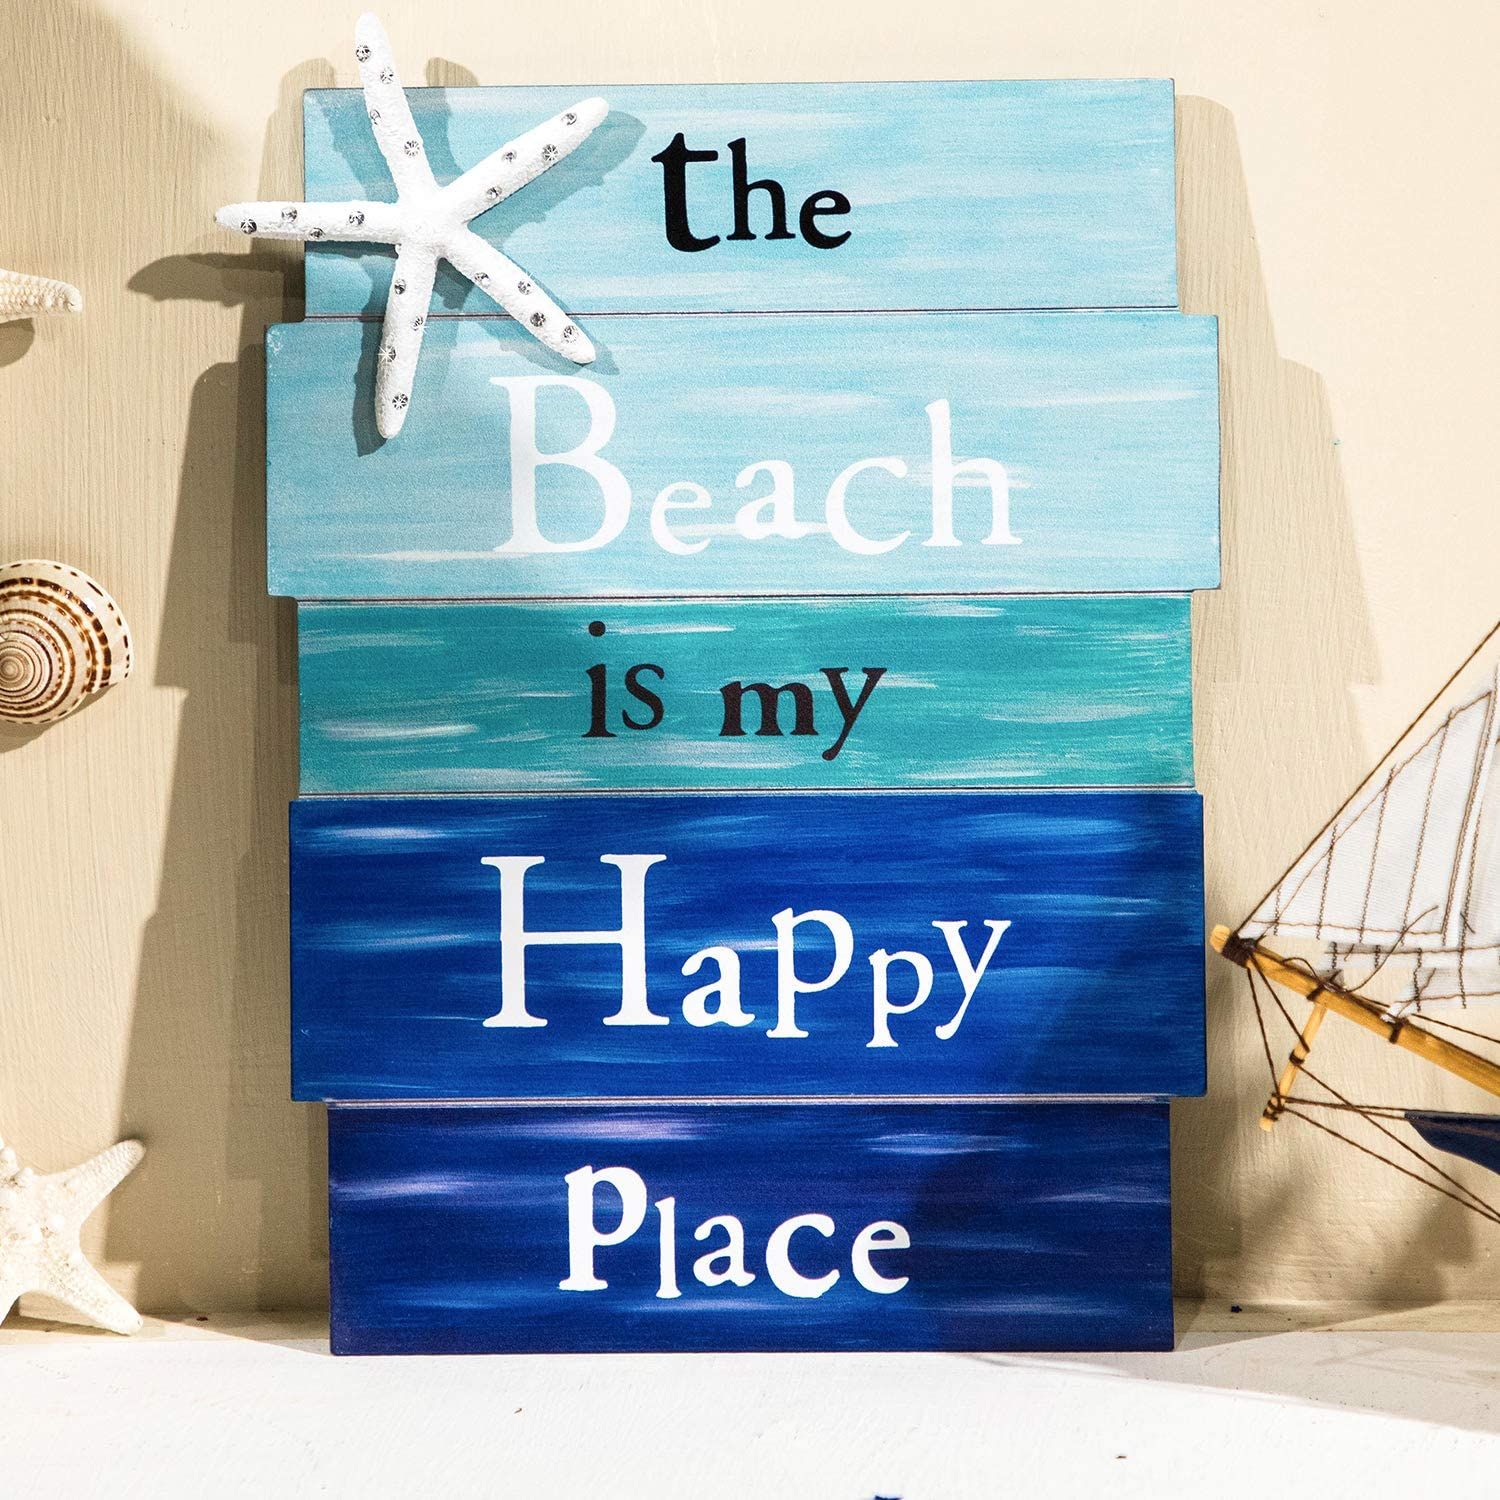 Honoson Wooden Beach Plaque Door Wall Plaque Decor with Diamond-Studded Starfish The Beach is My Happy Place Wooden Wall Decorative Sign